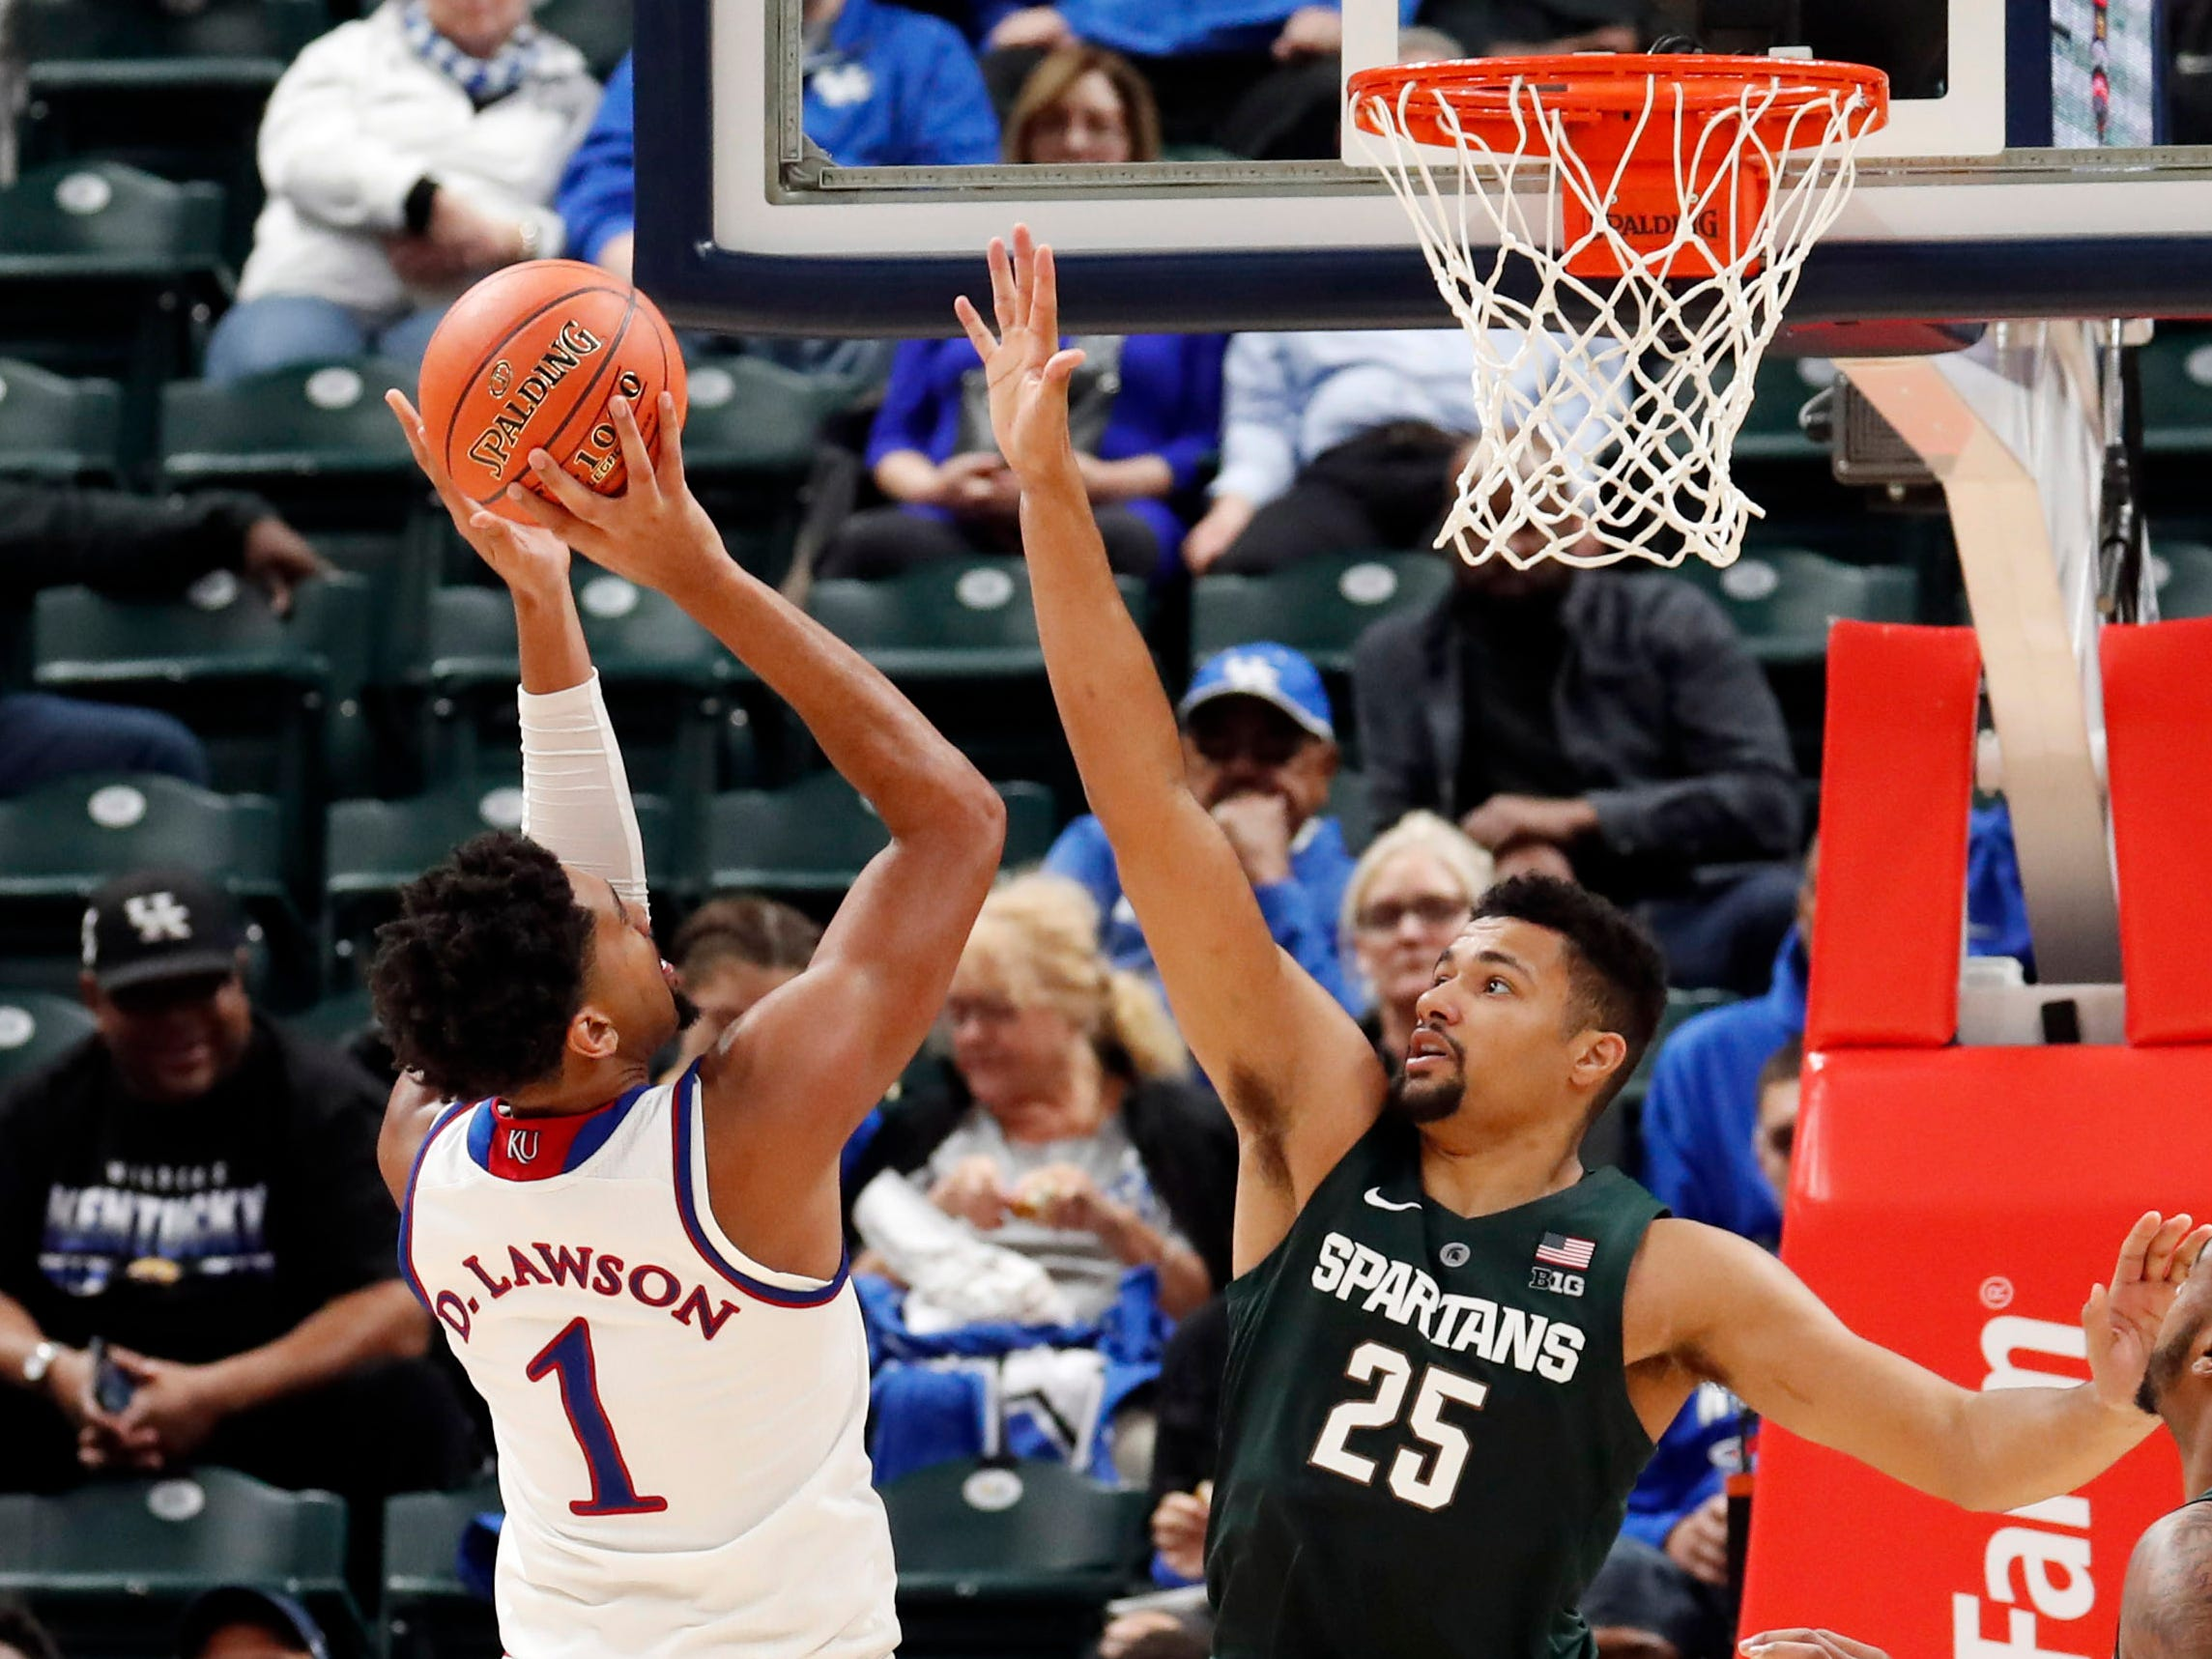 Kansas forward Dedric Lawson takes a shot over Michigan State forward Kenny Goins in the second half of their game on Tuesday, Nov. 6, 2018.